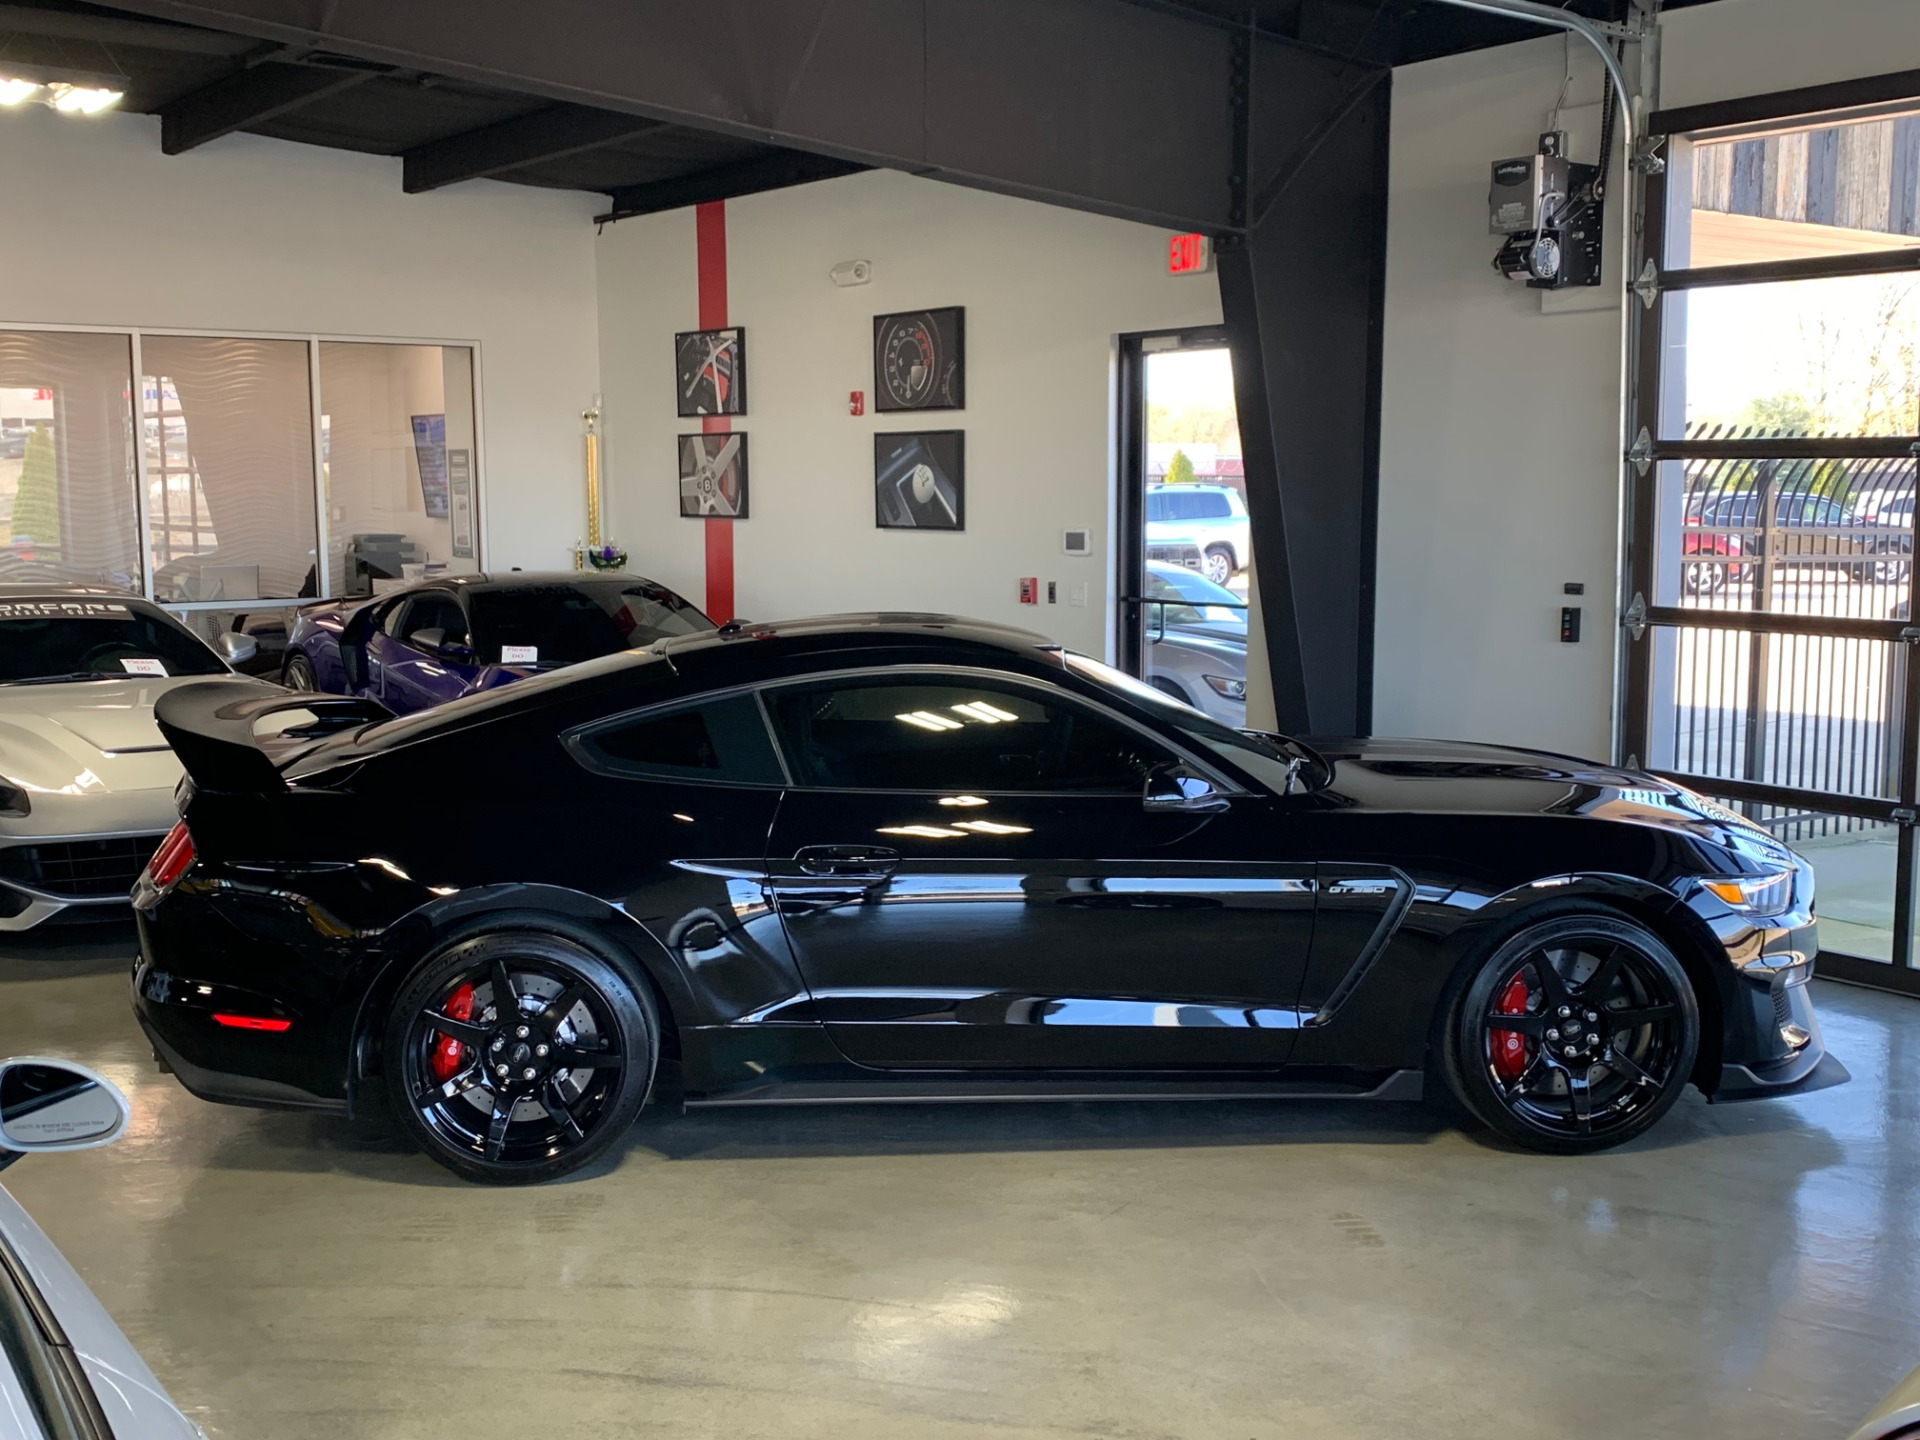 Gt350R For Sale >> 2018 Ford Mustang Shelby Gt350r Stock J5503975 For Sale